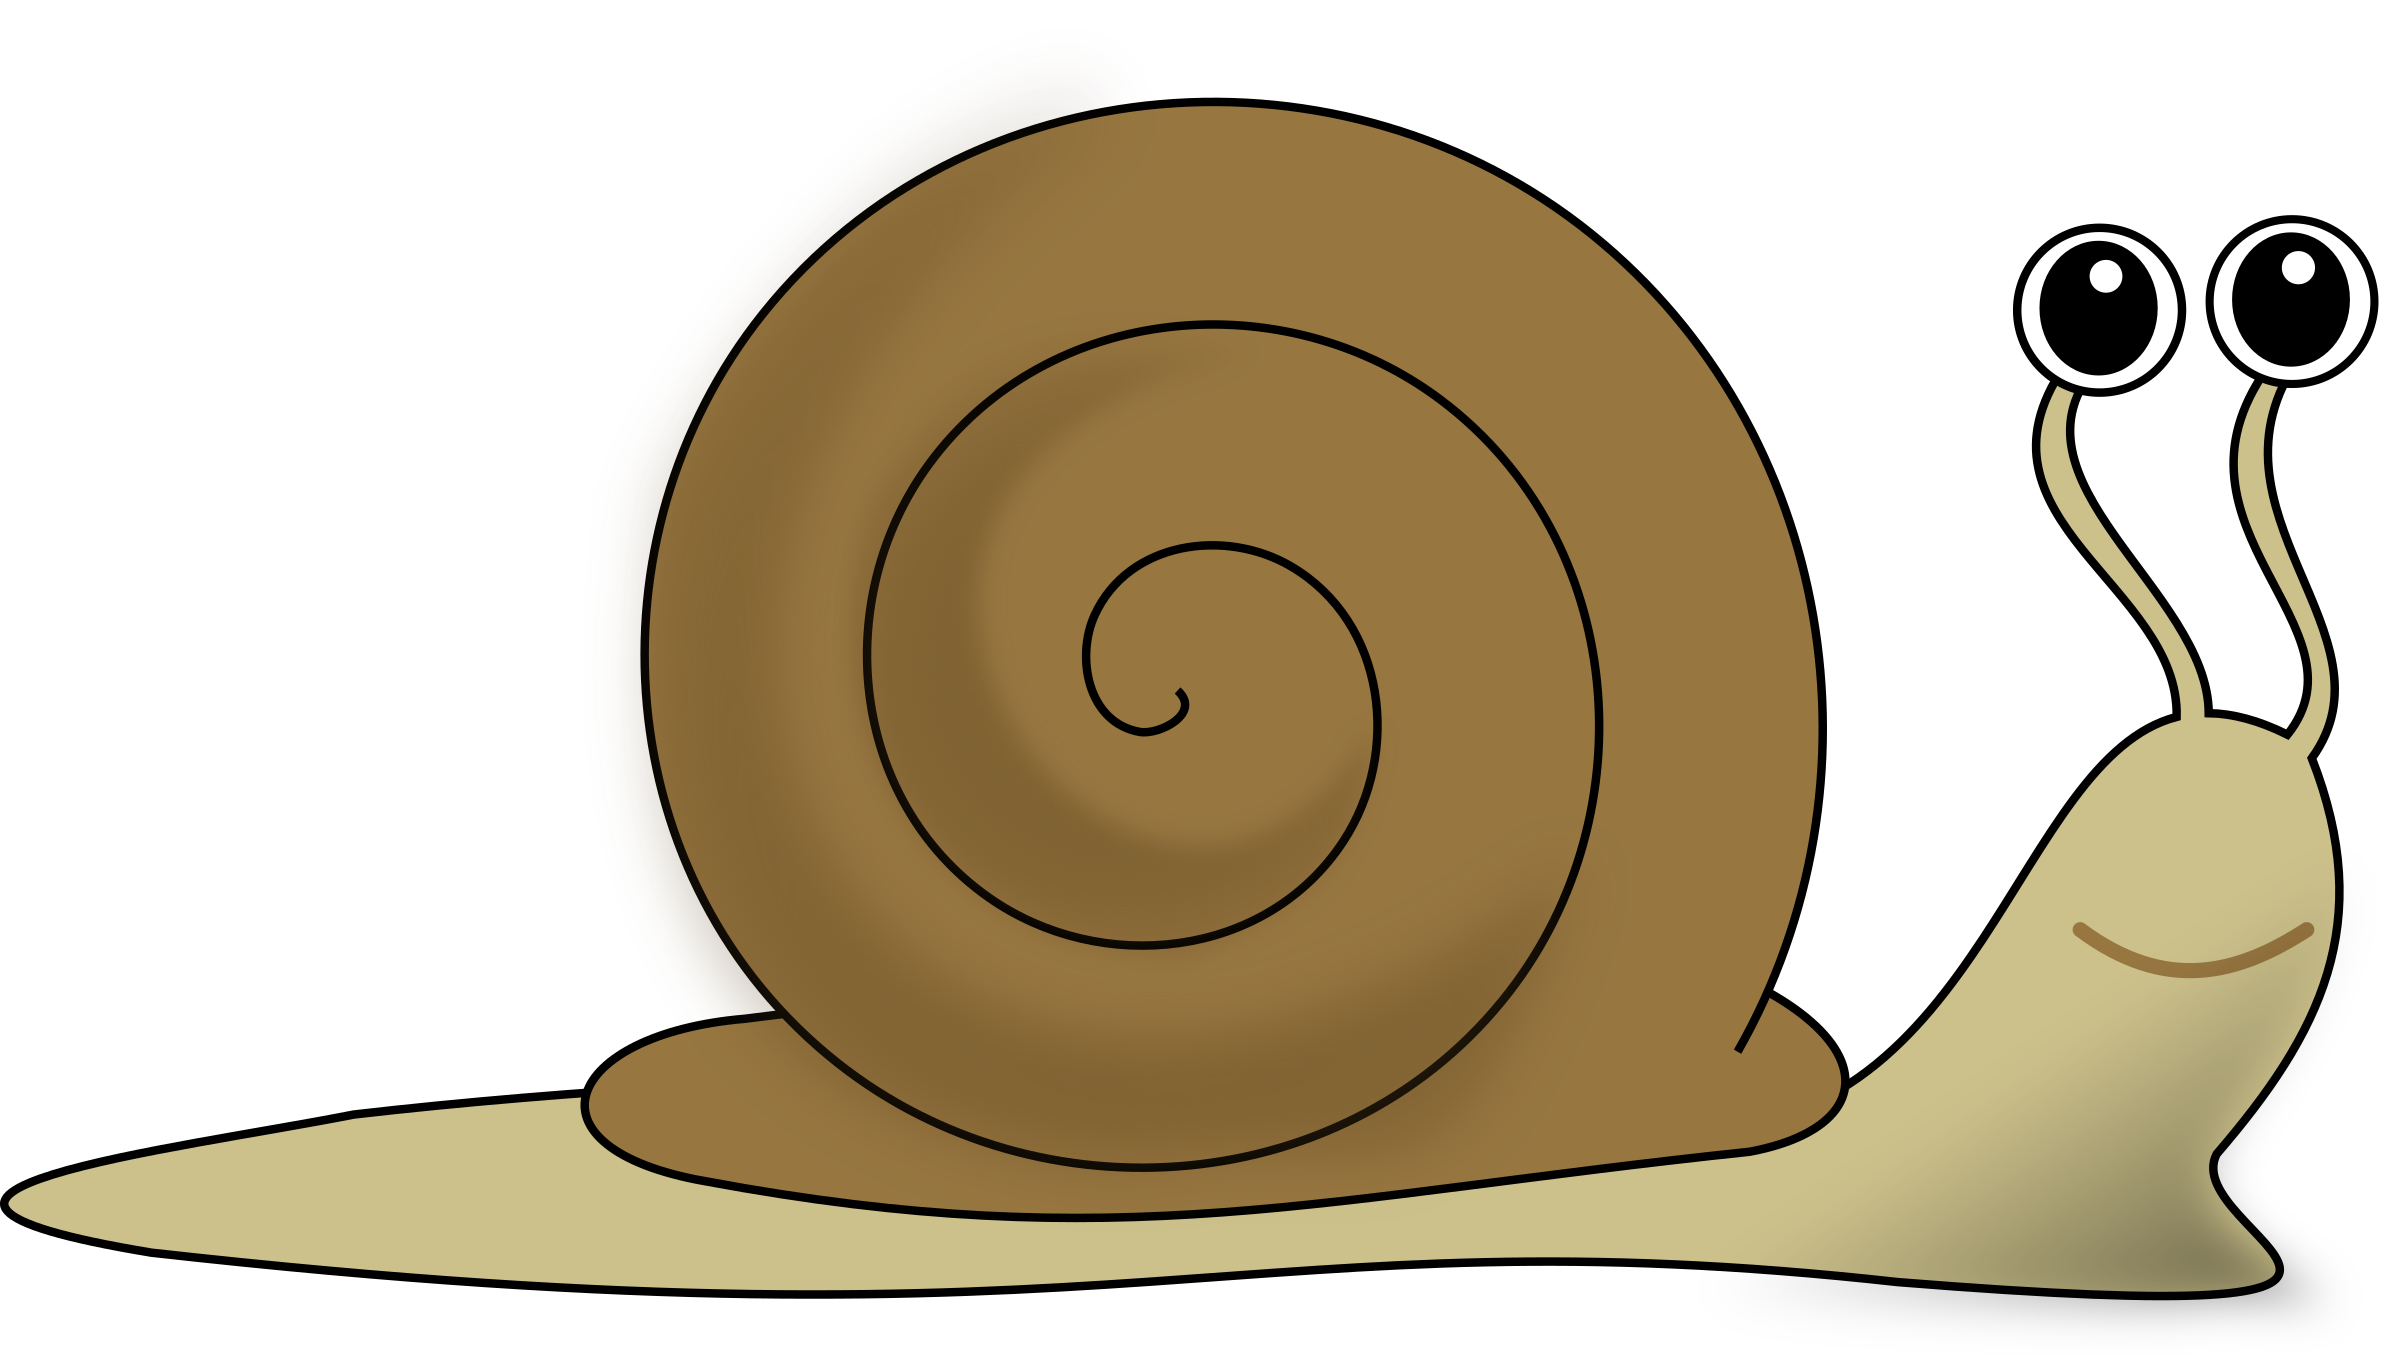 Snail clipart png royalty free stock Free Snail Cliparts, Download Free Clip Art, Free Clip Art on ... png royalty free stock